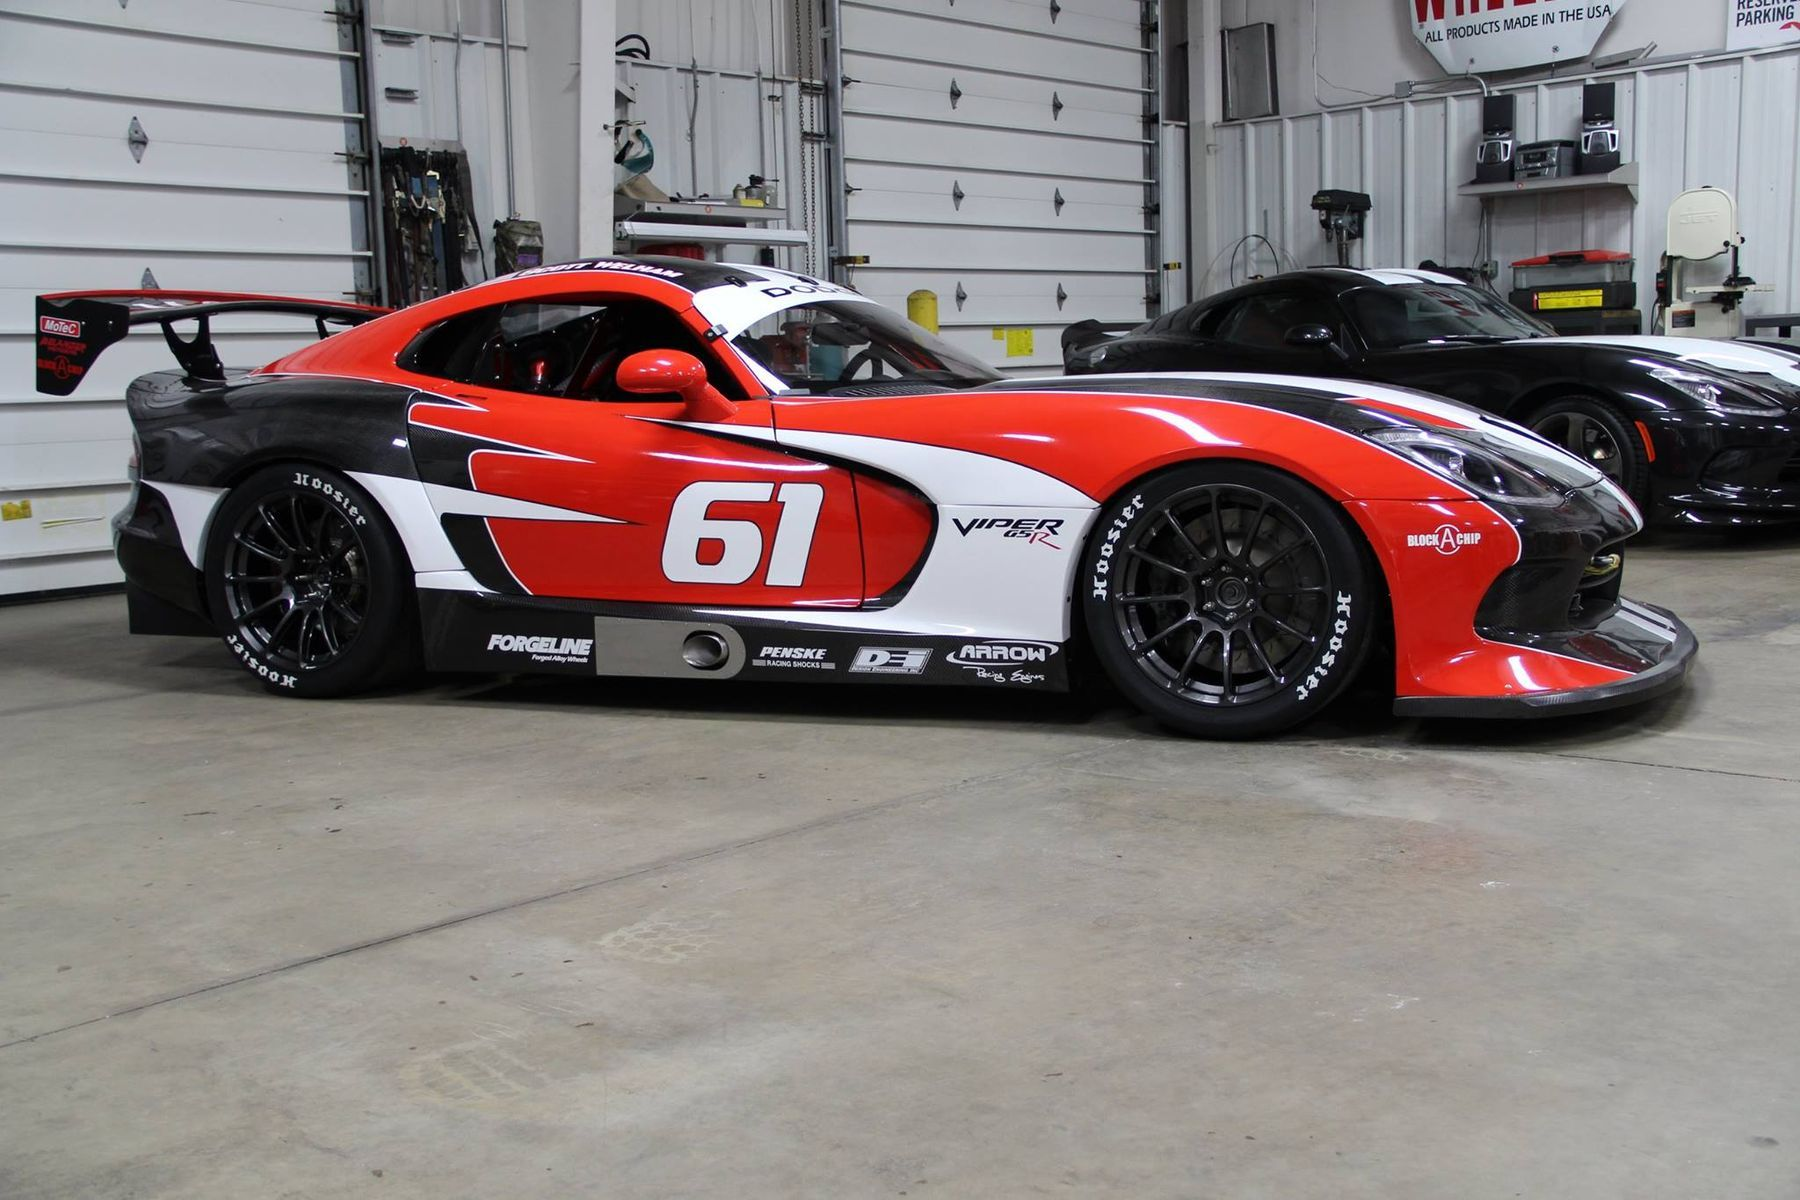 2014 Dodge Viper | McCann Racing G5R Dodge Viper